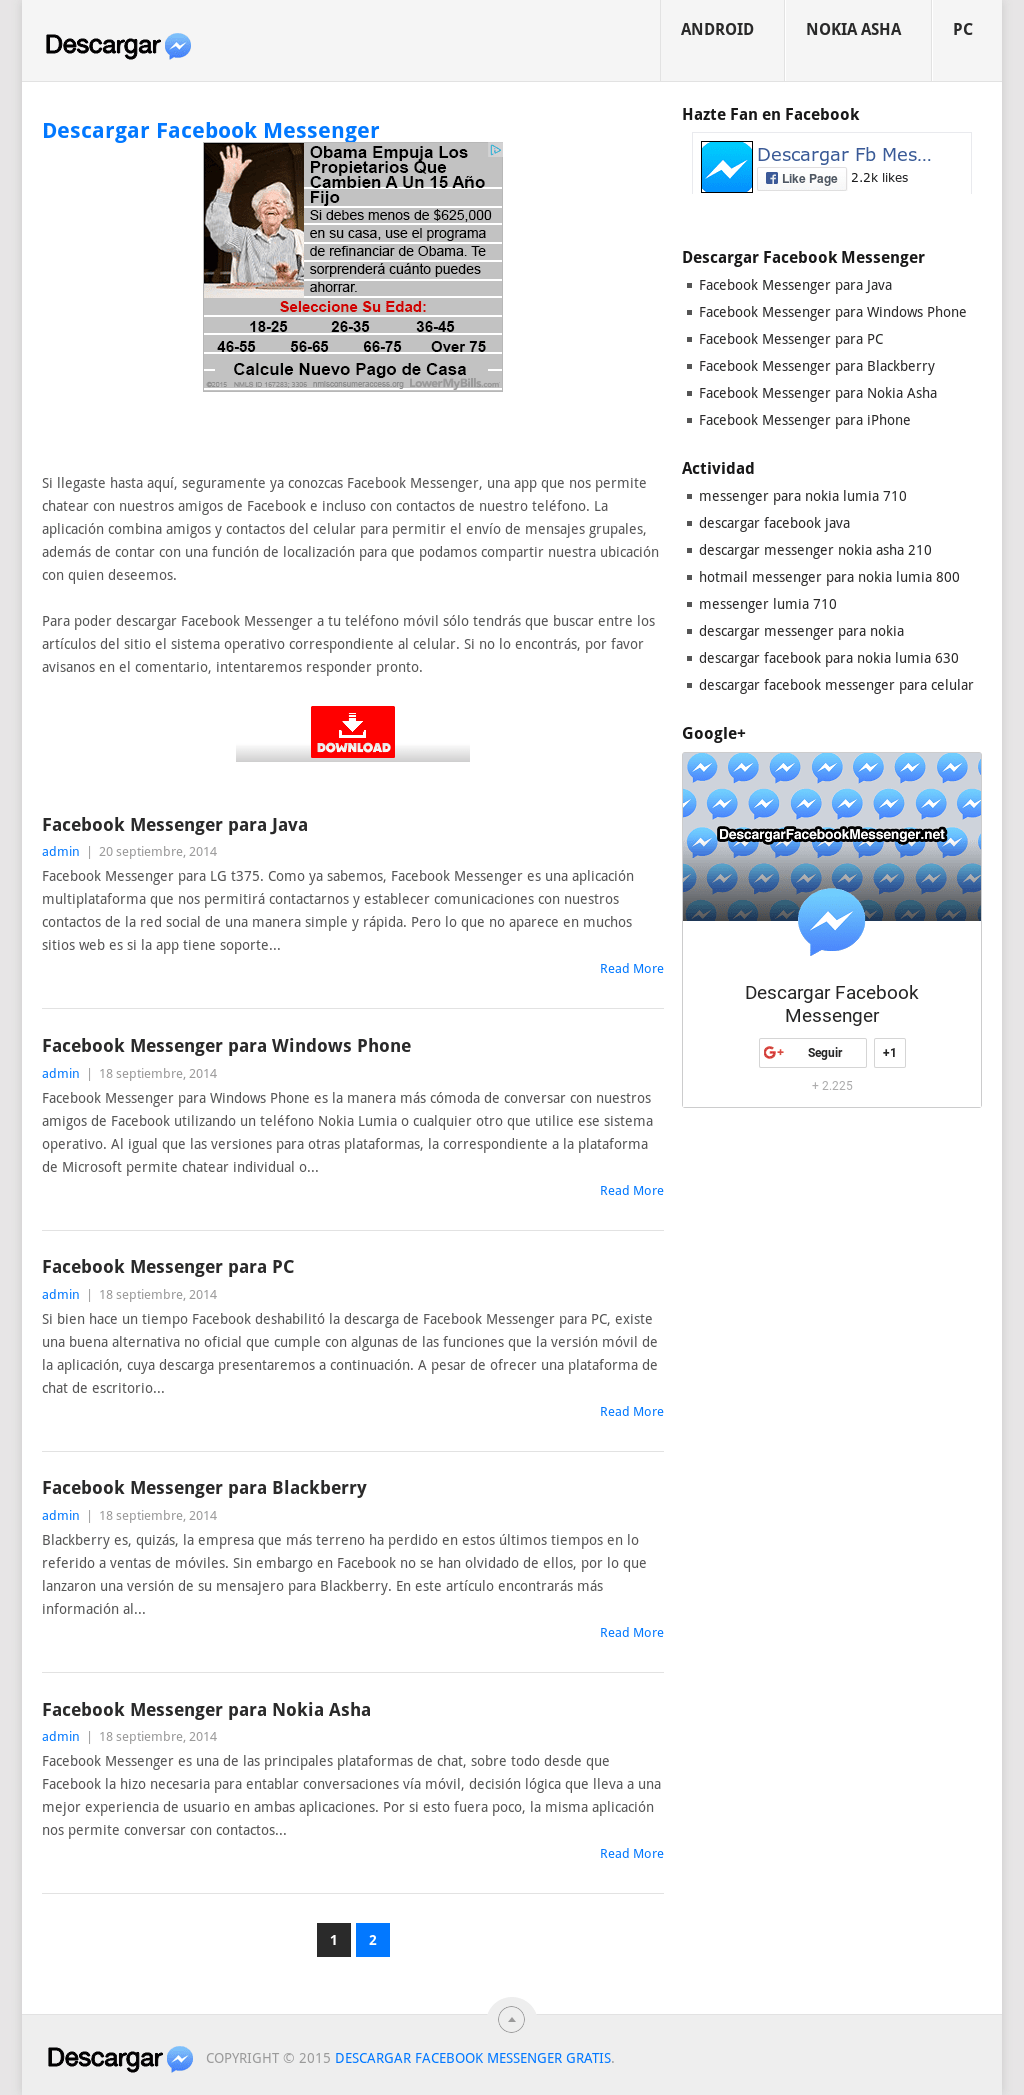 Descargar Messenger Gratis Descargar Fb Messenger Gratis Competitors Revenue And Employees